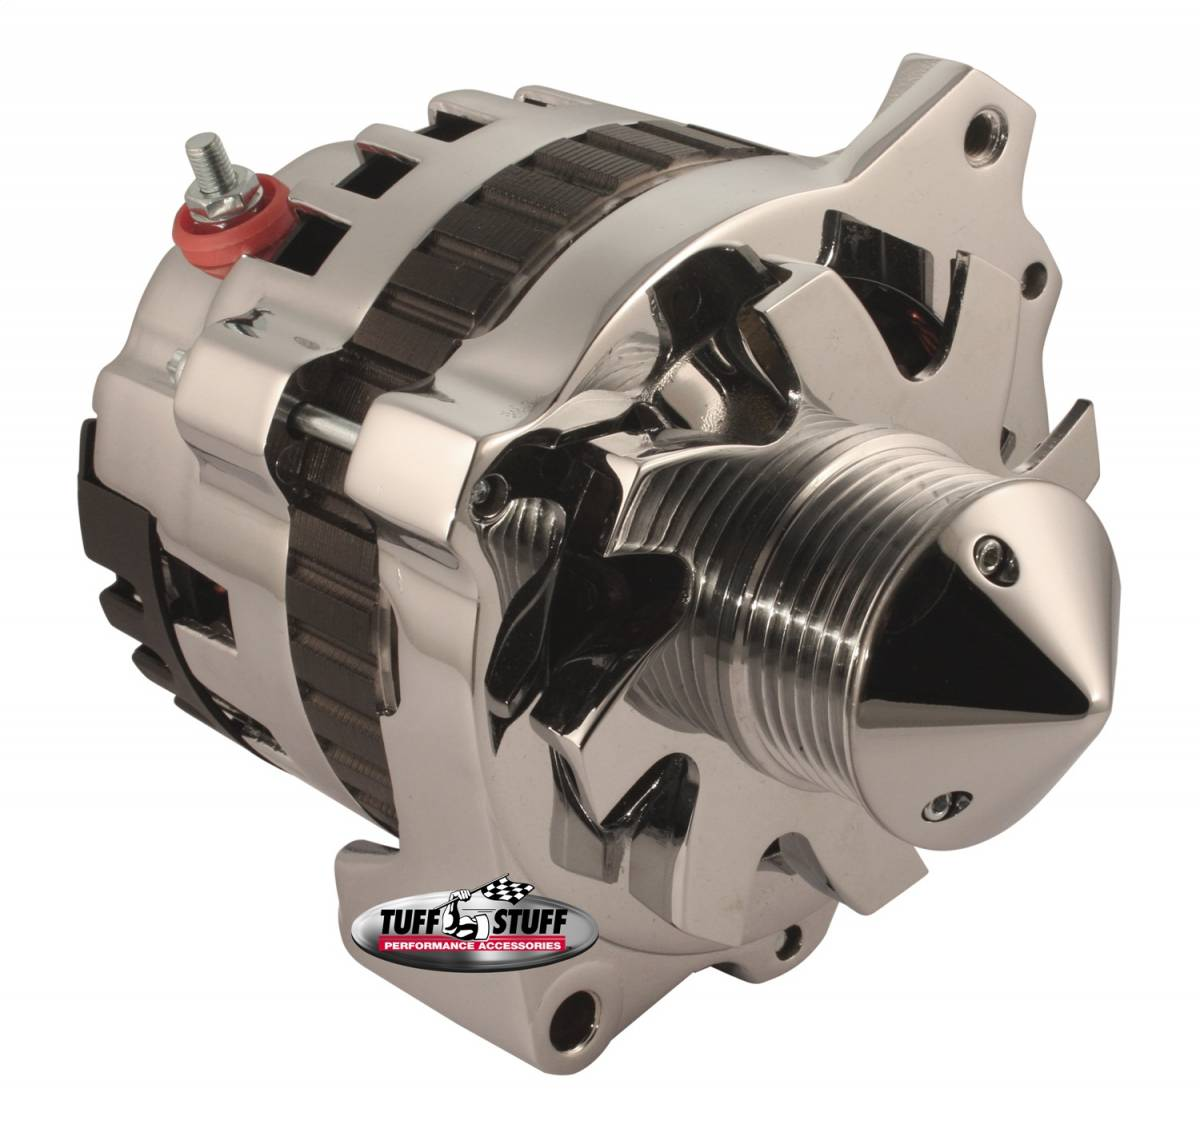 Tuff Stuff Performance - Silver Bullet Alternator 160 AMP 1 Wire Or OEM Hookup 6 Groove Pulley 6.125 in. Bolt To Bolt Bullet Fan Chrome 7866ABULL6G